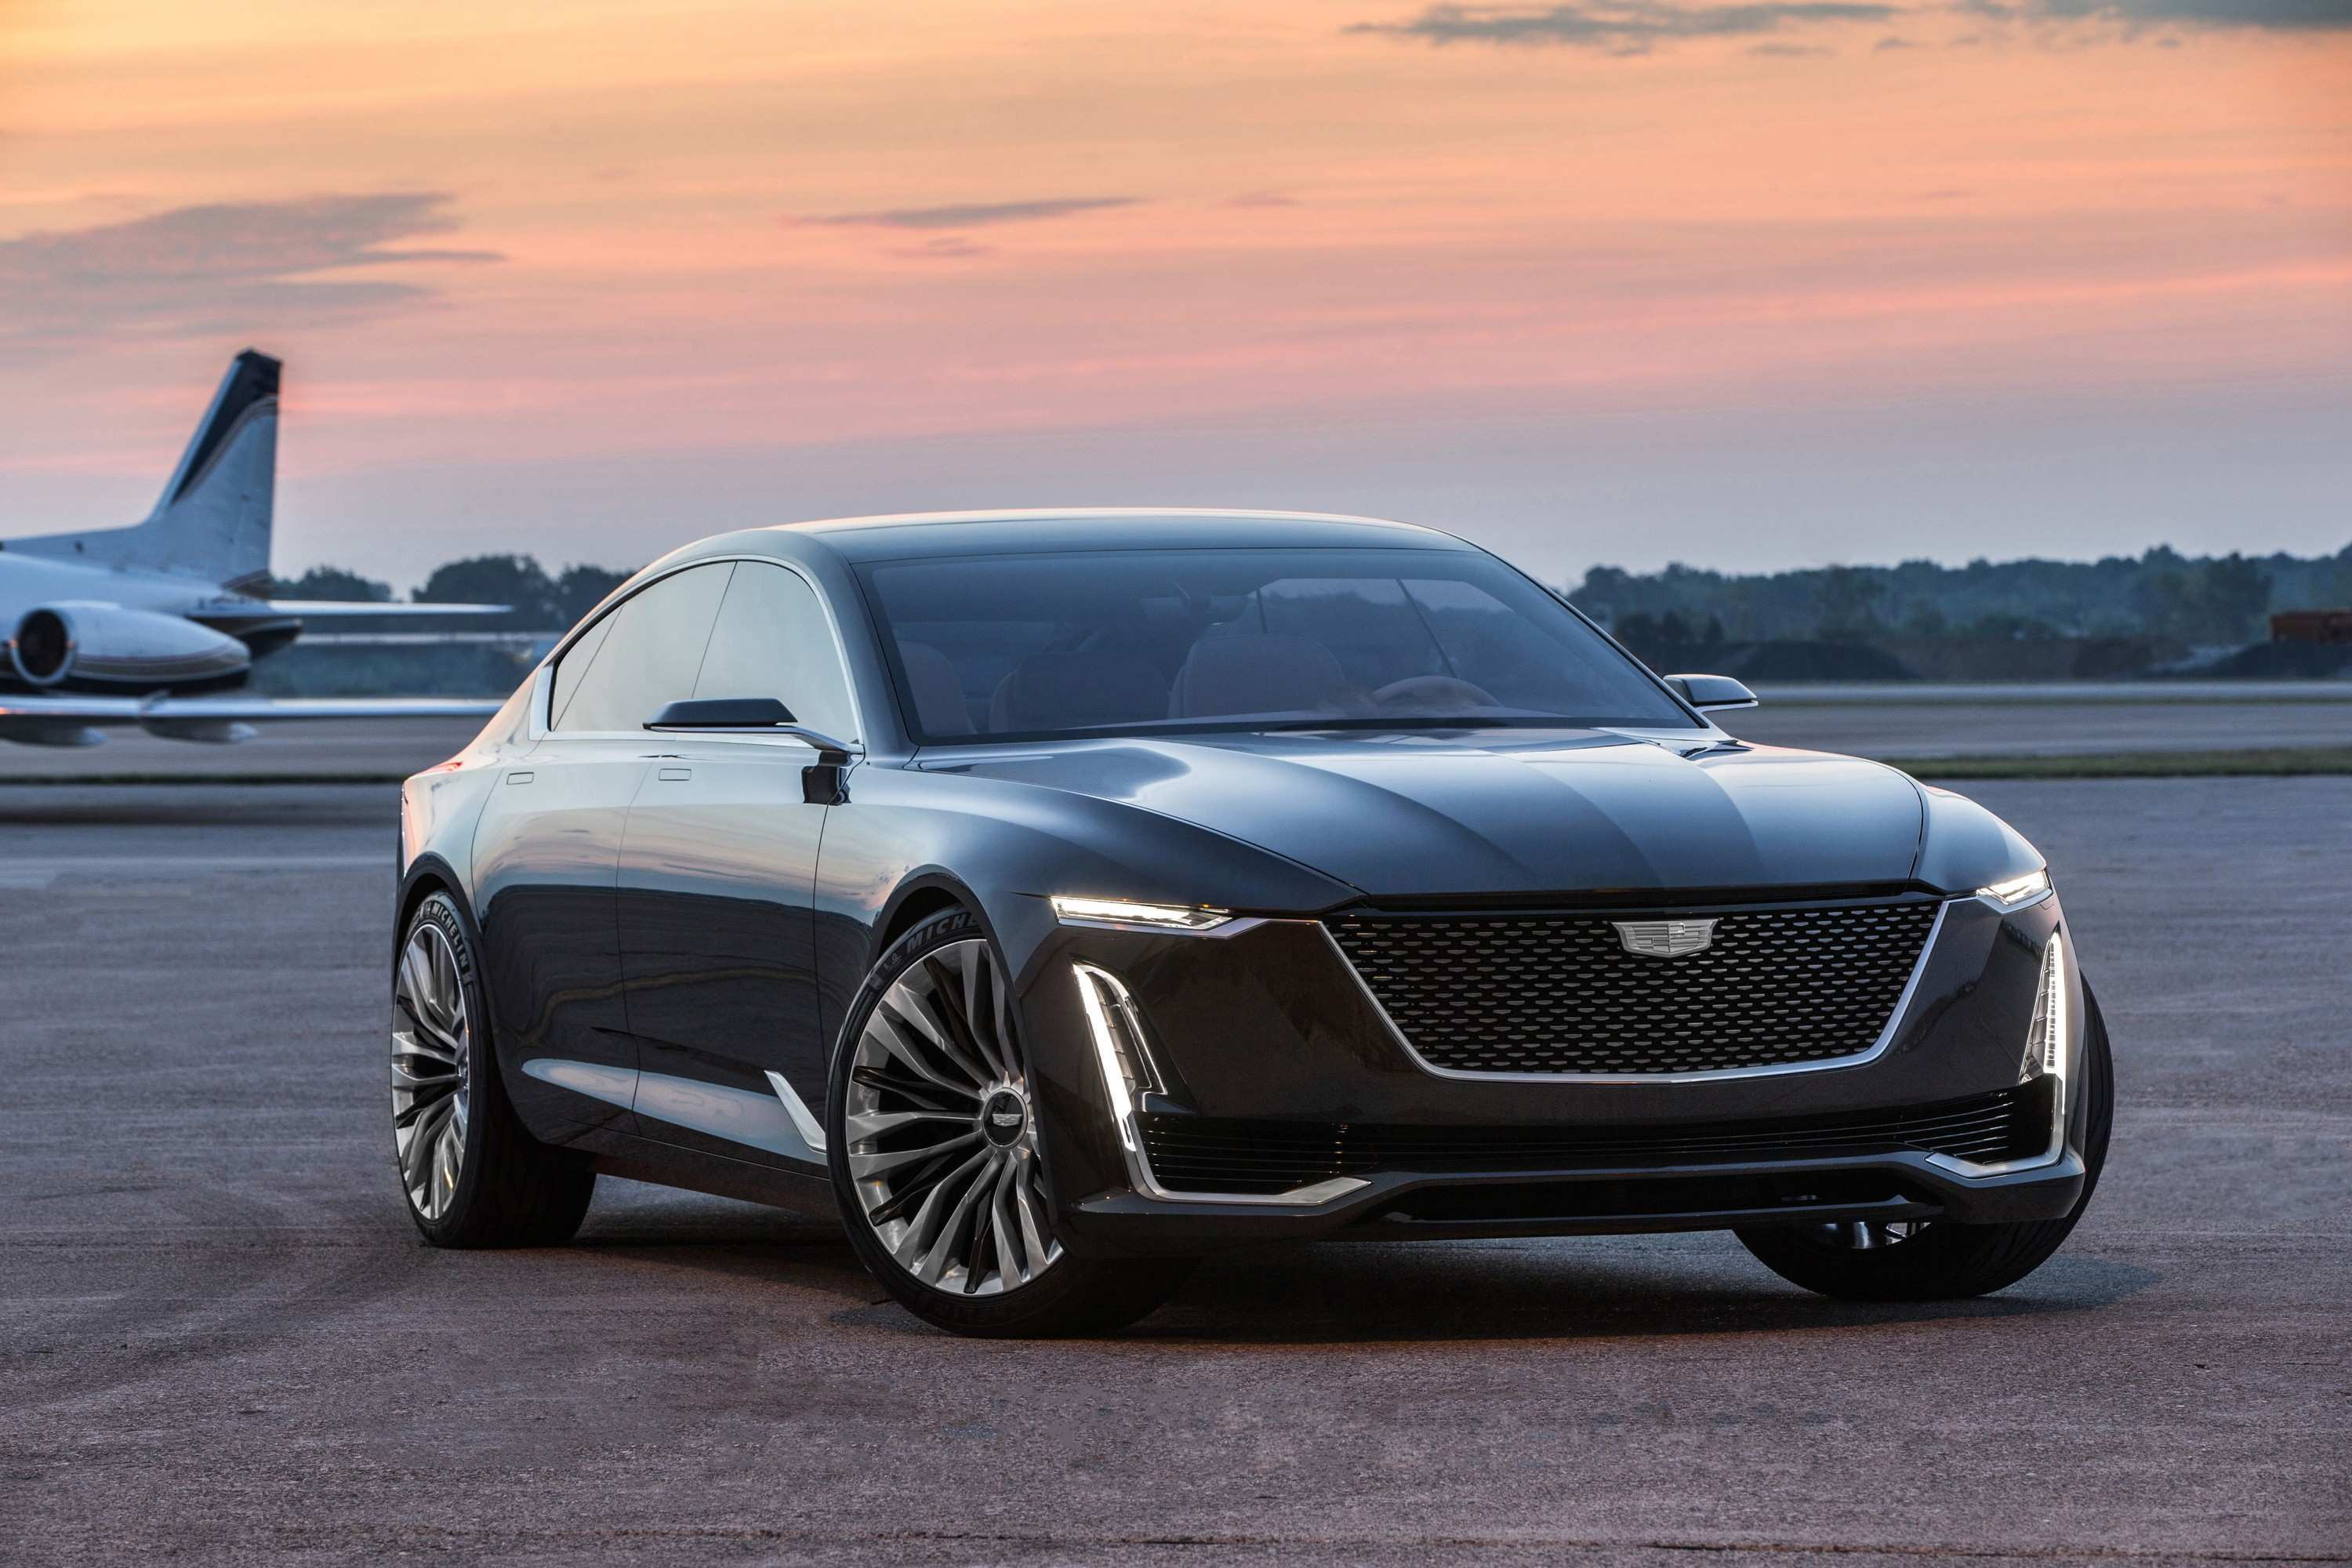 71 Concept of 2020 Candillac Xts Configurations by 2020 Candillac Xts